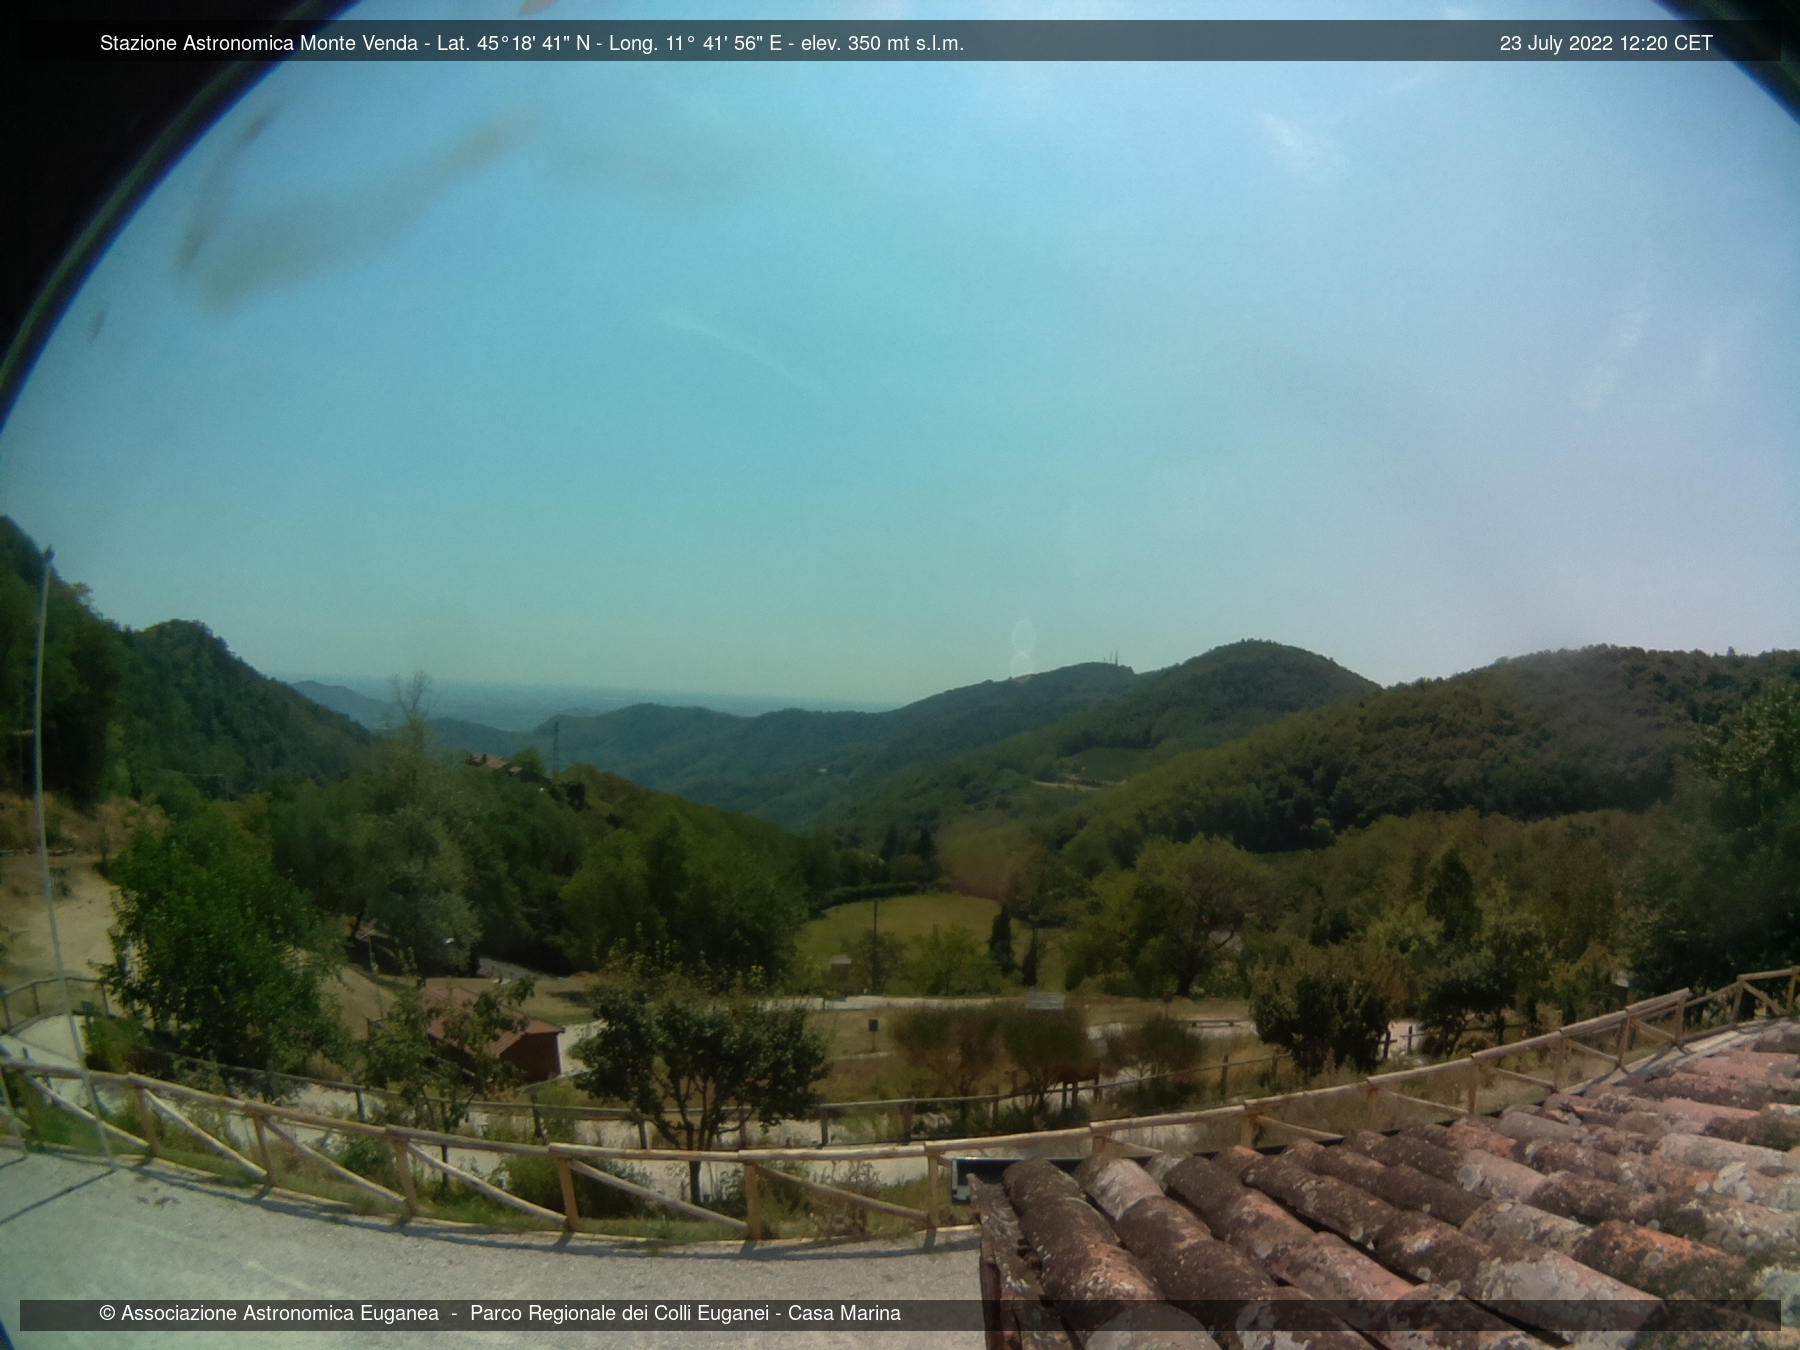 Webcam Colli Euganei (PD) Monte Venda 300 m.